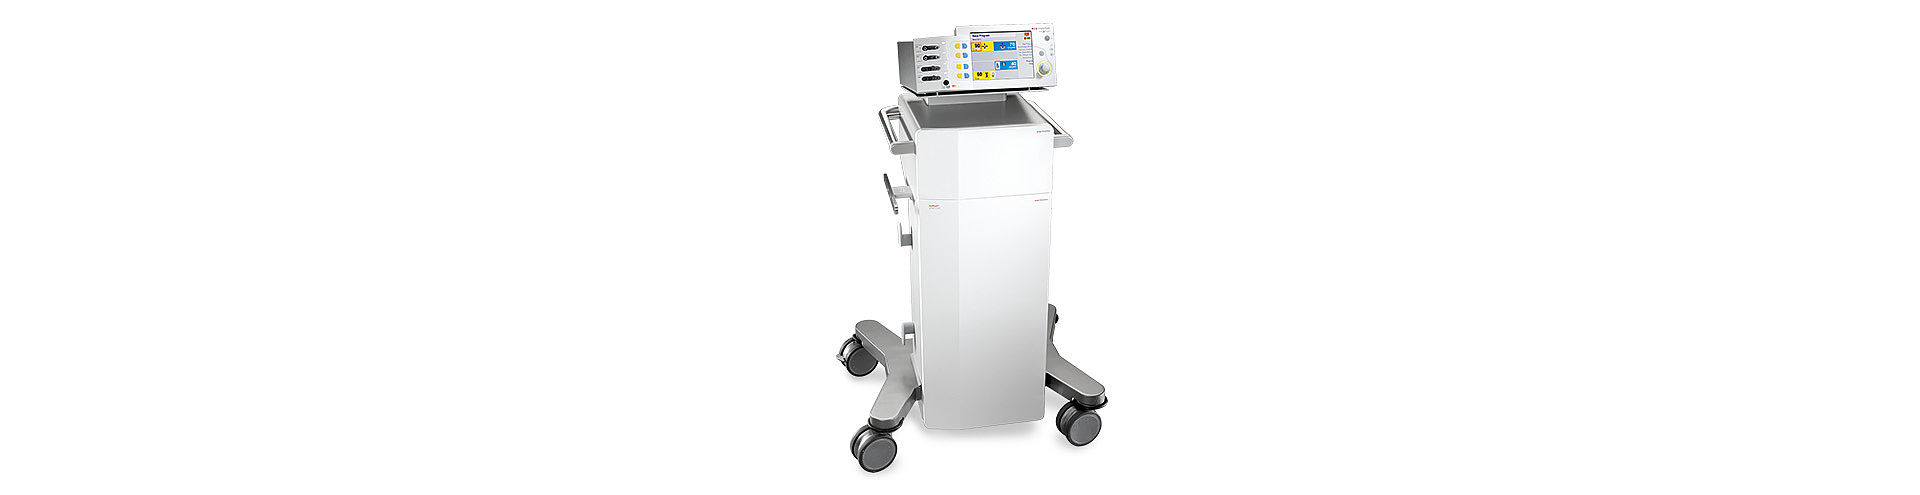 Electrosurgery - accessories smartCart